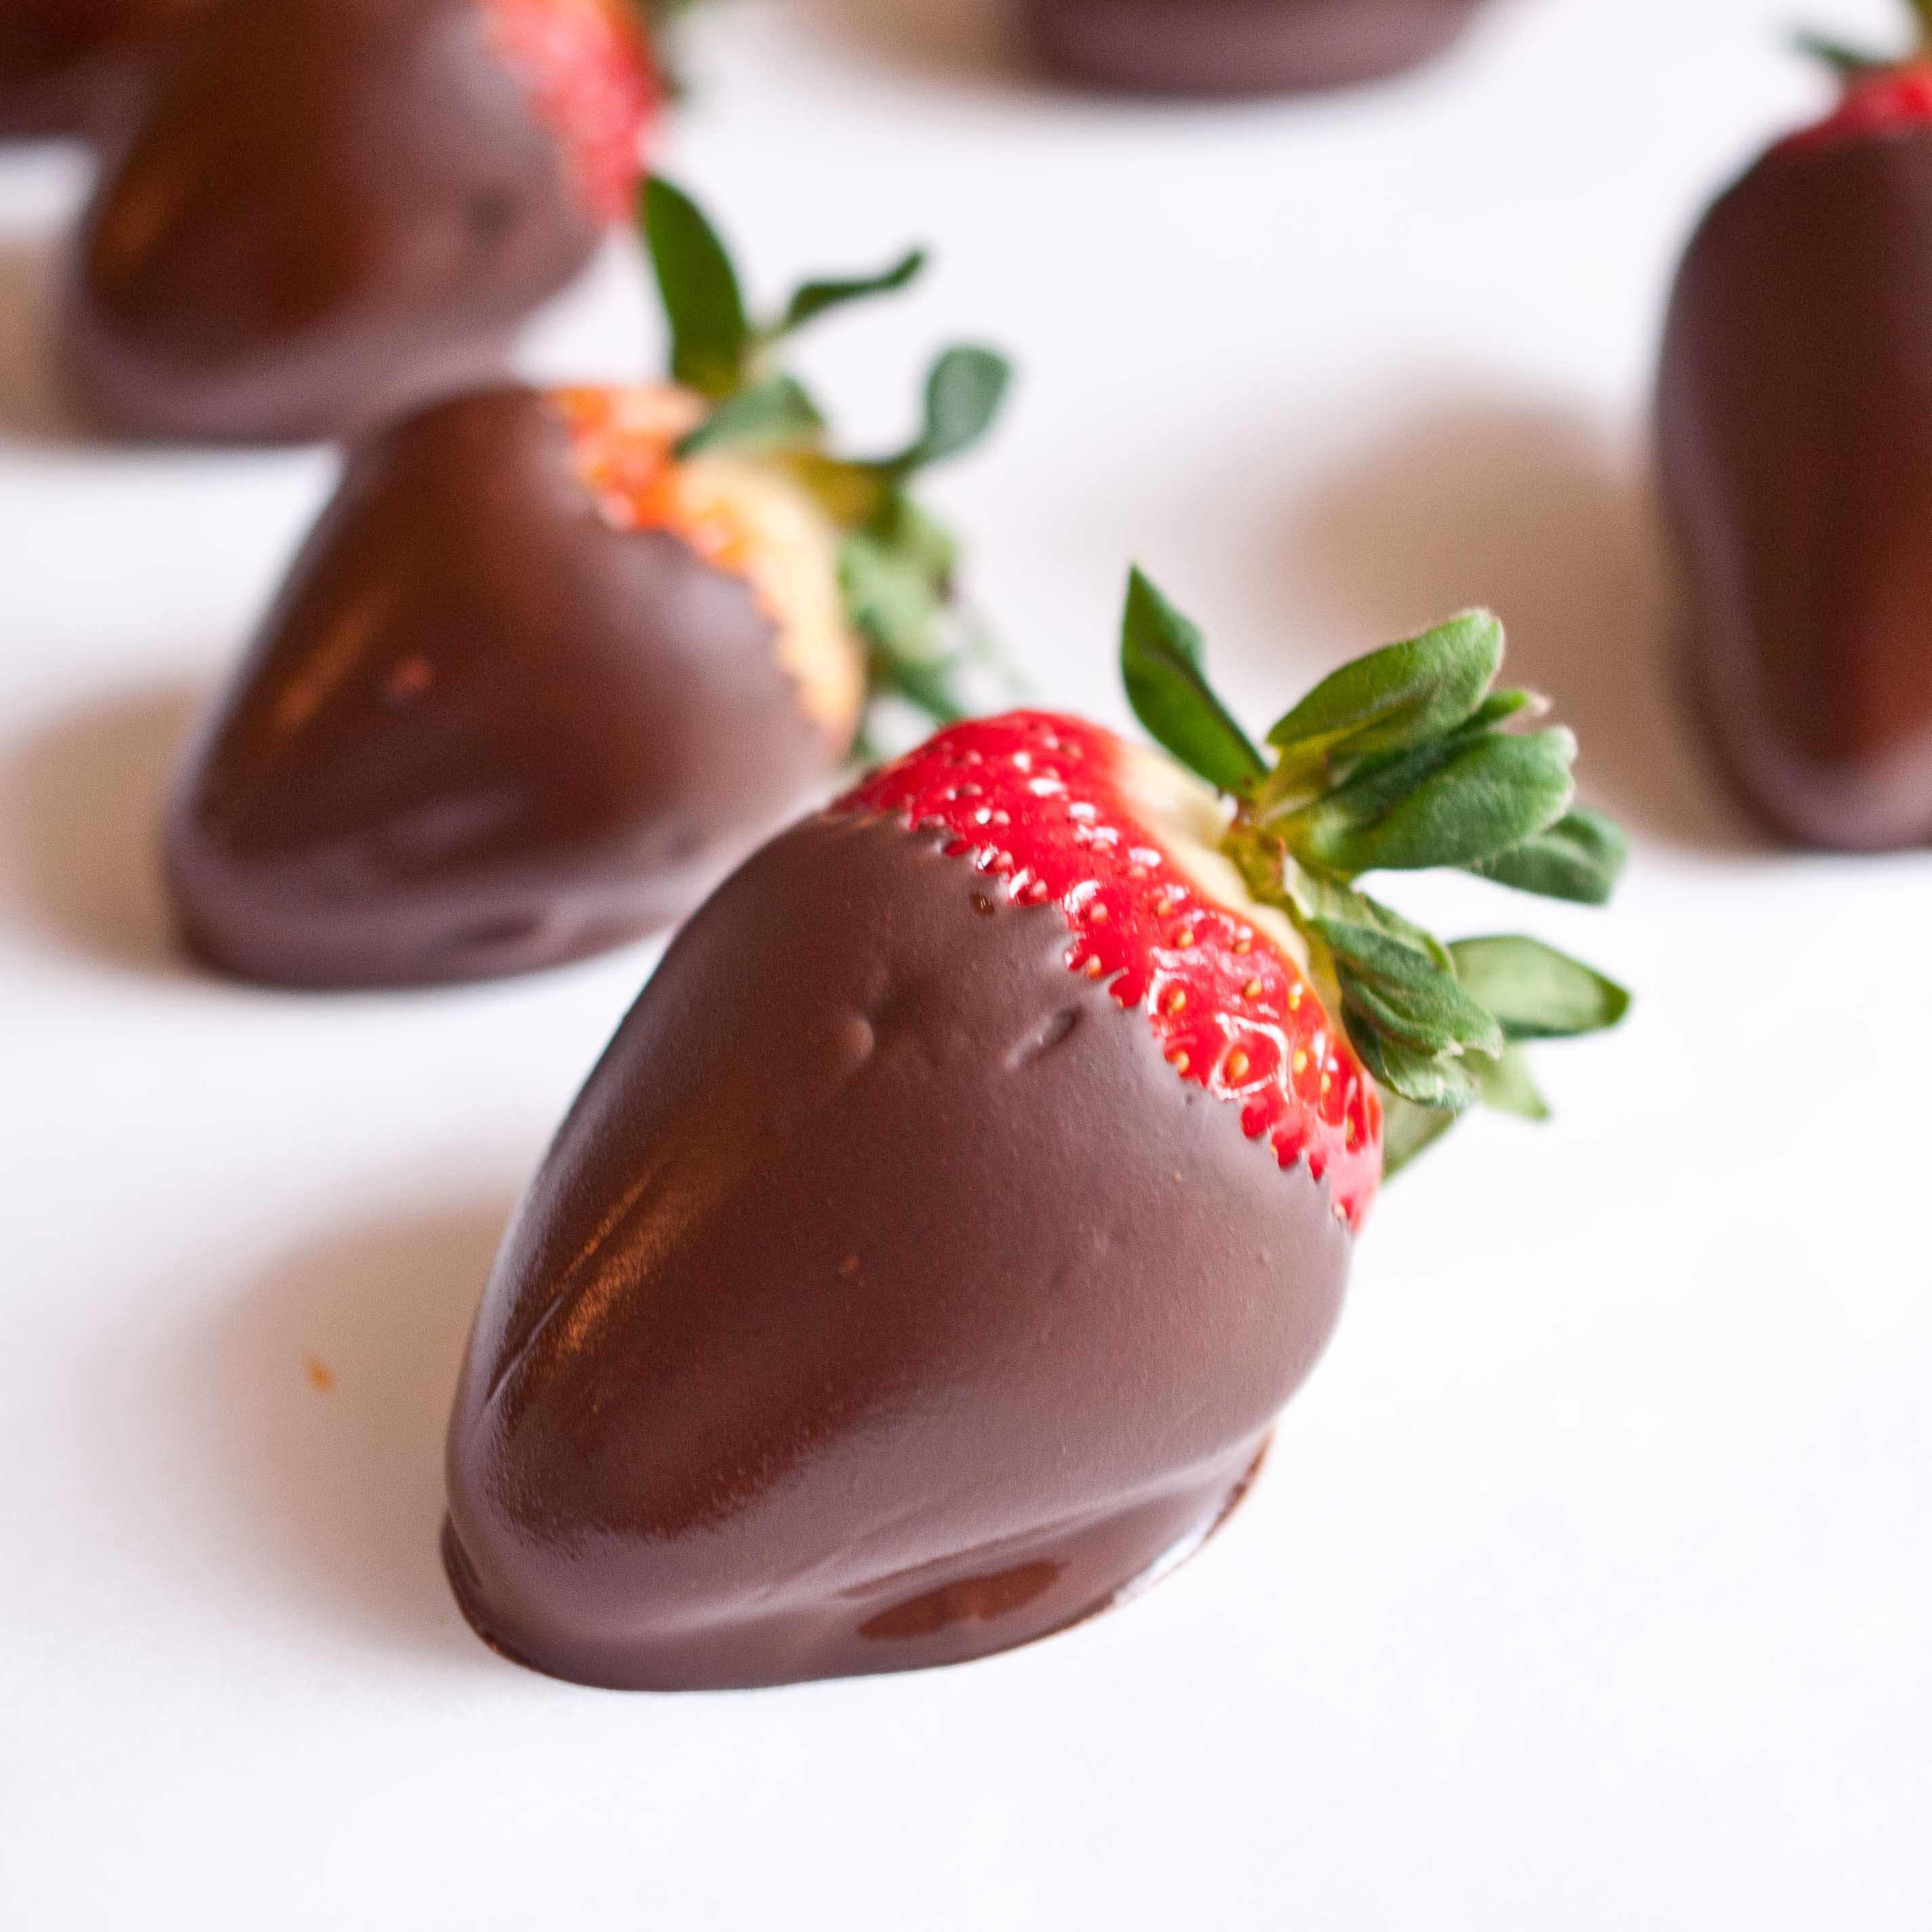 Chocolate Covered Strawberries from Domestic Fits - Bake Your Day